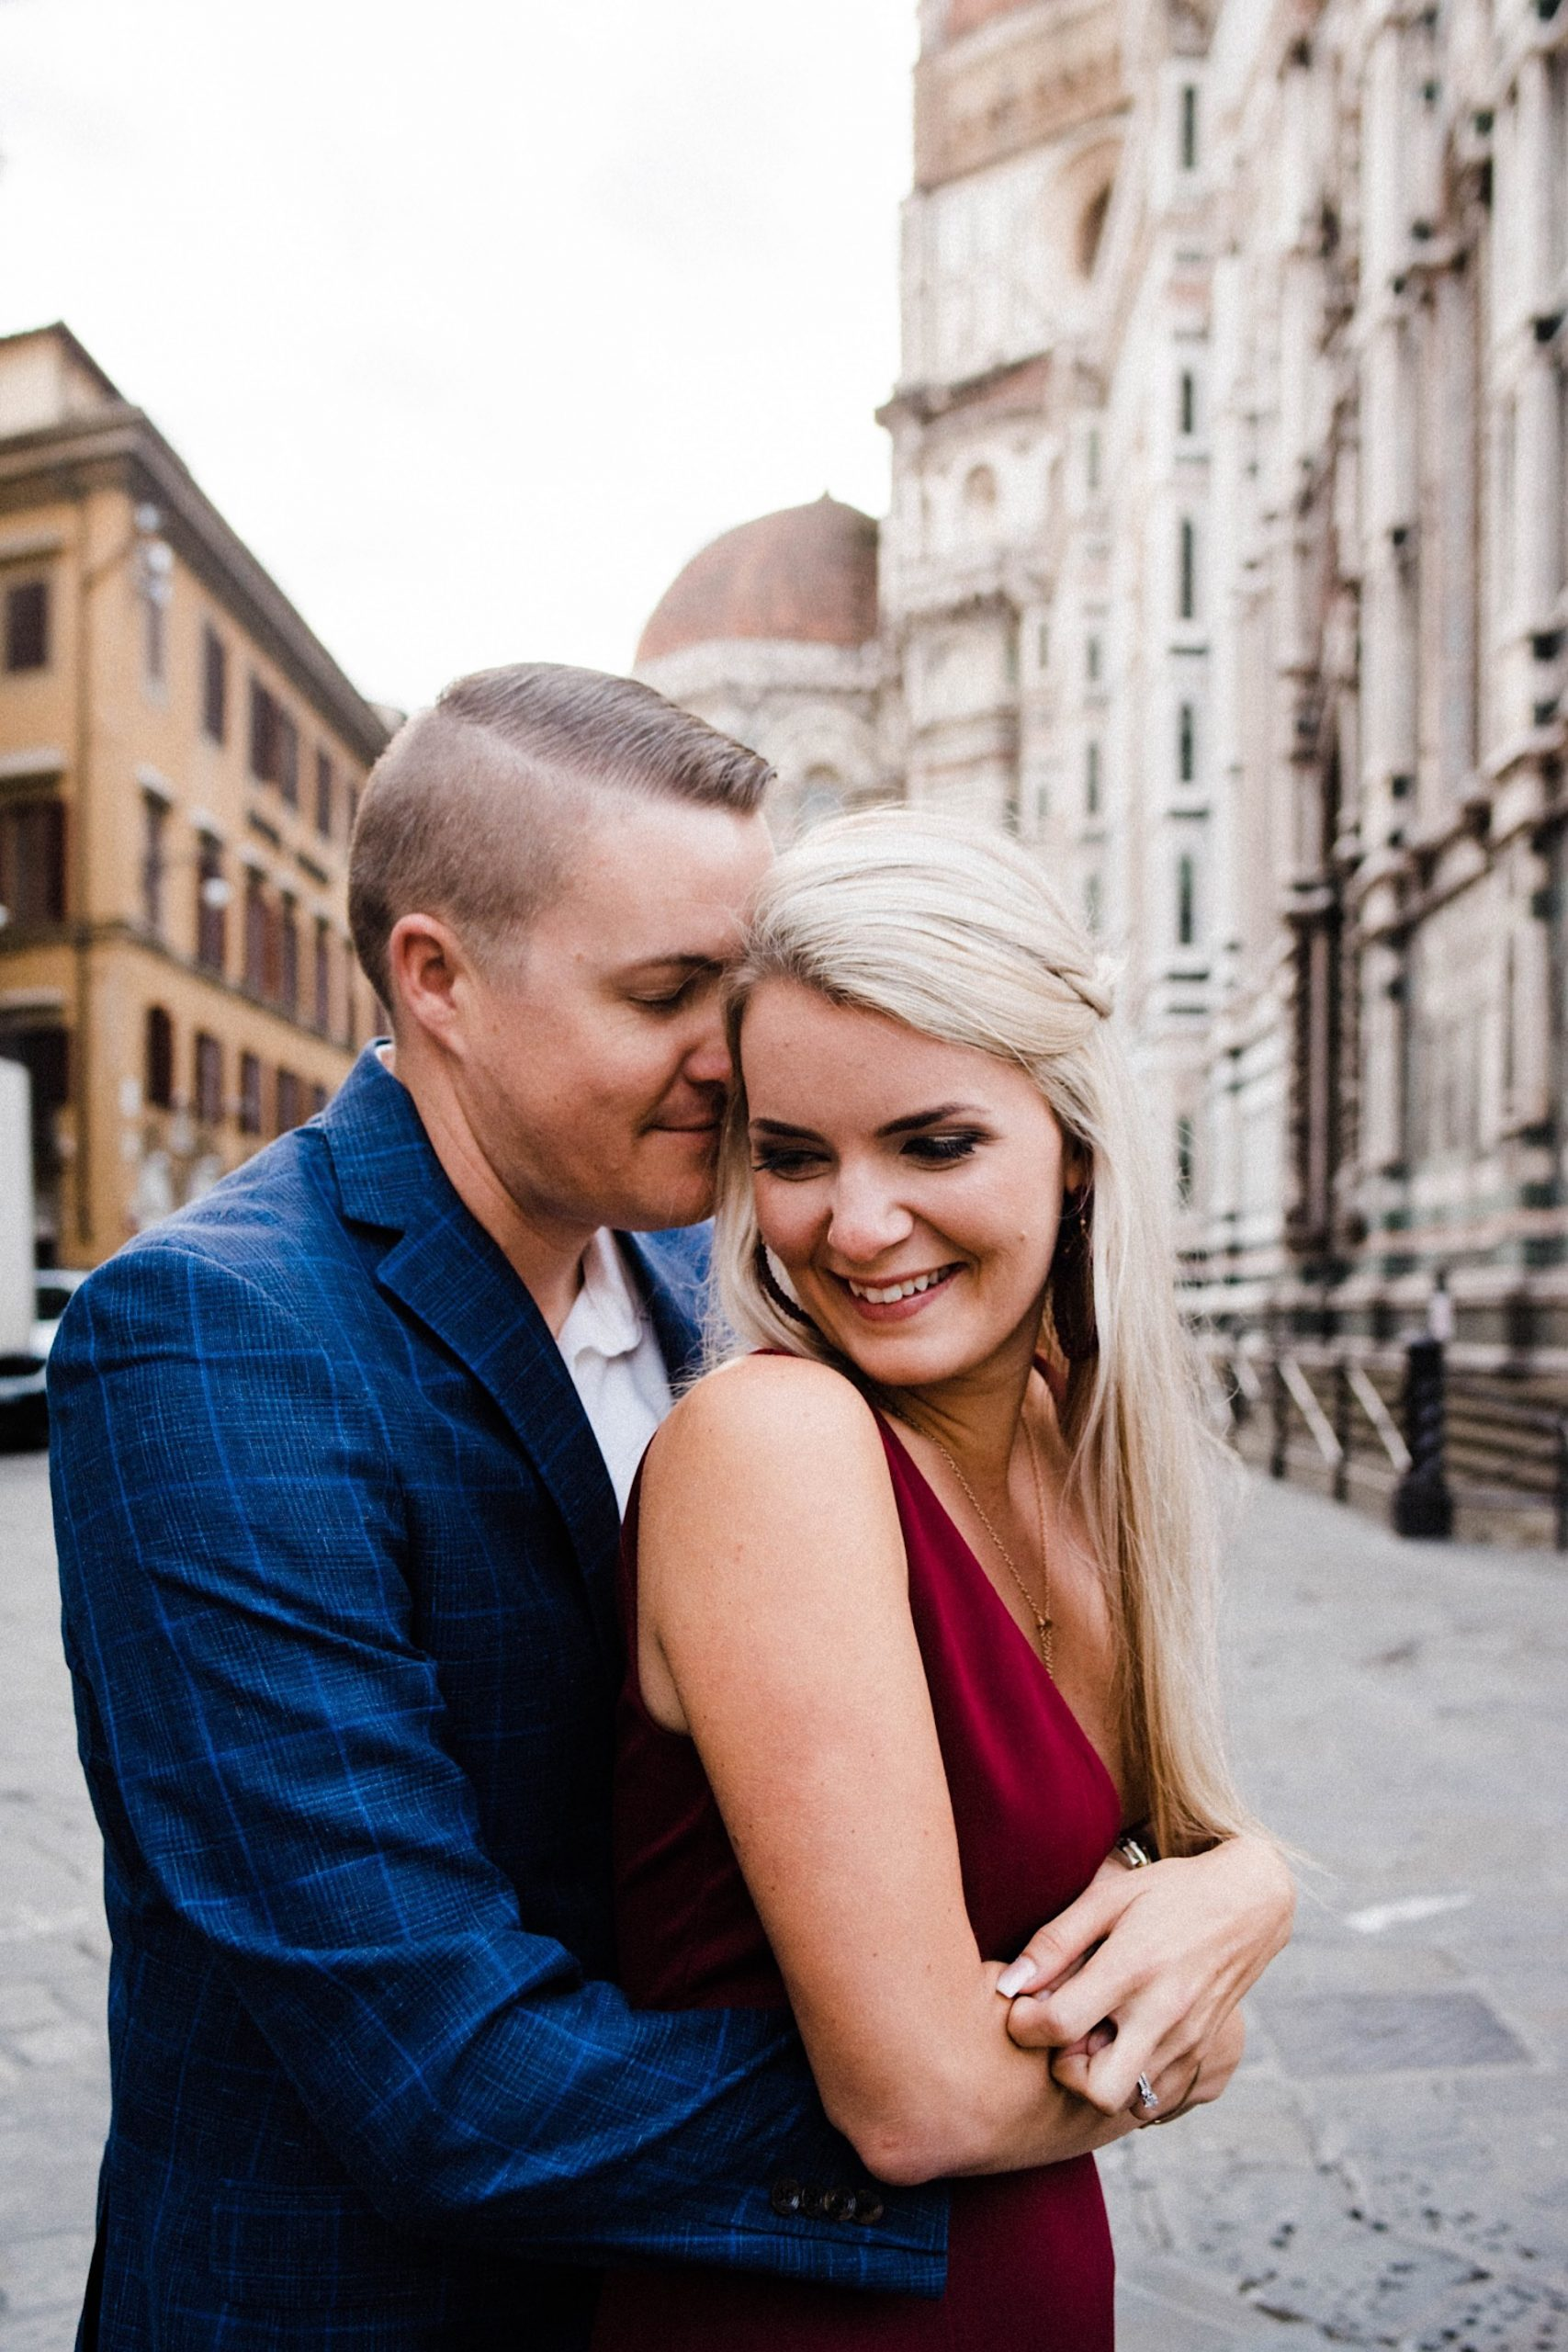 A close up of a couple embracing in front of Florence's Duomo.